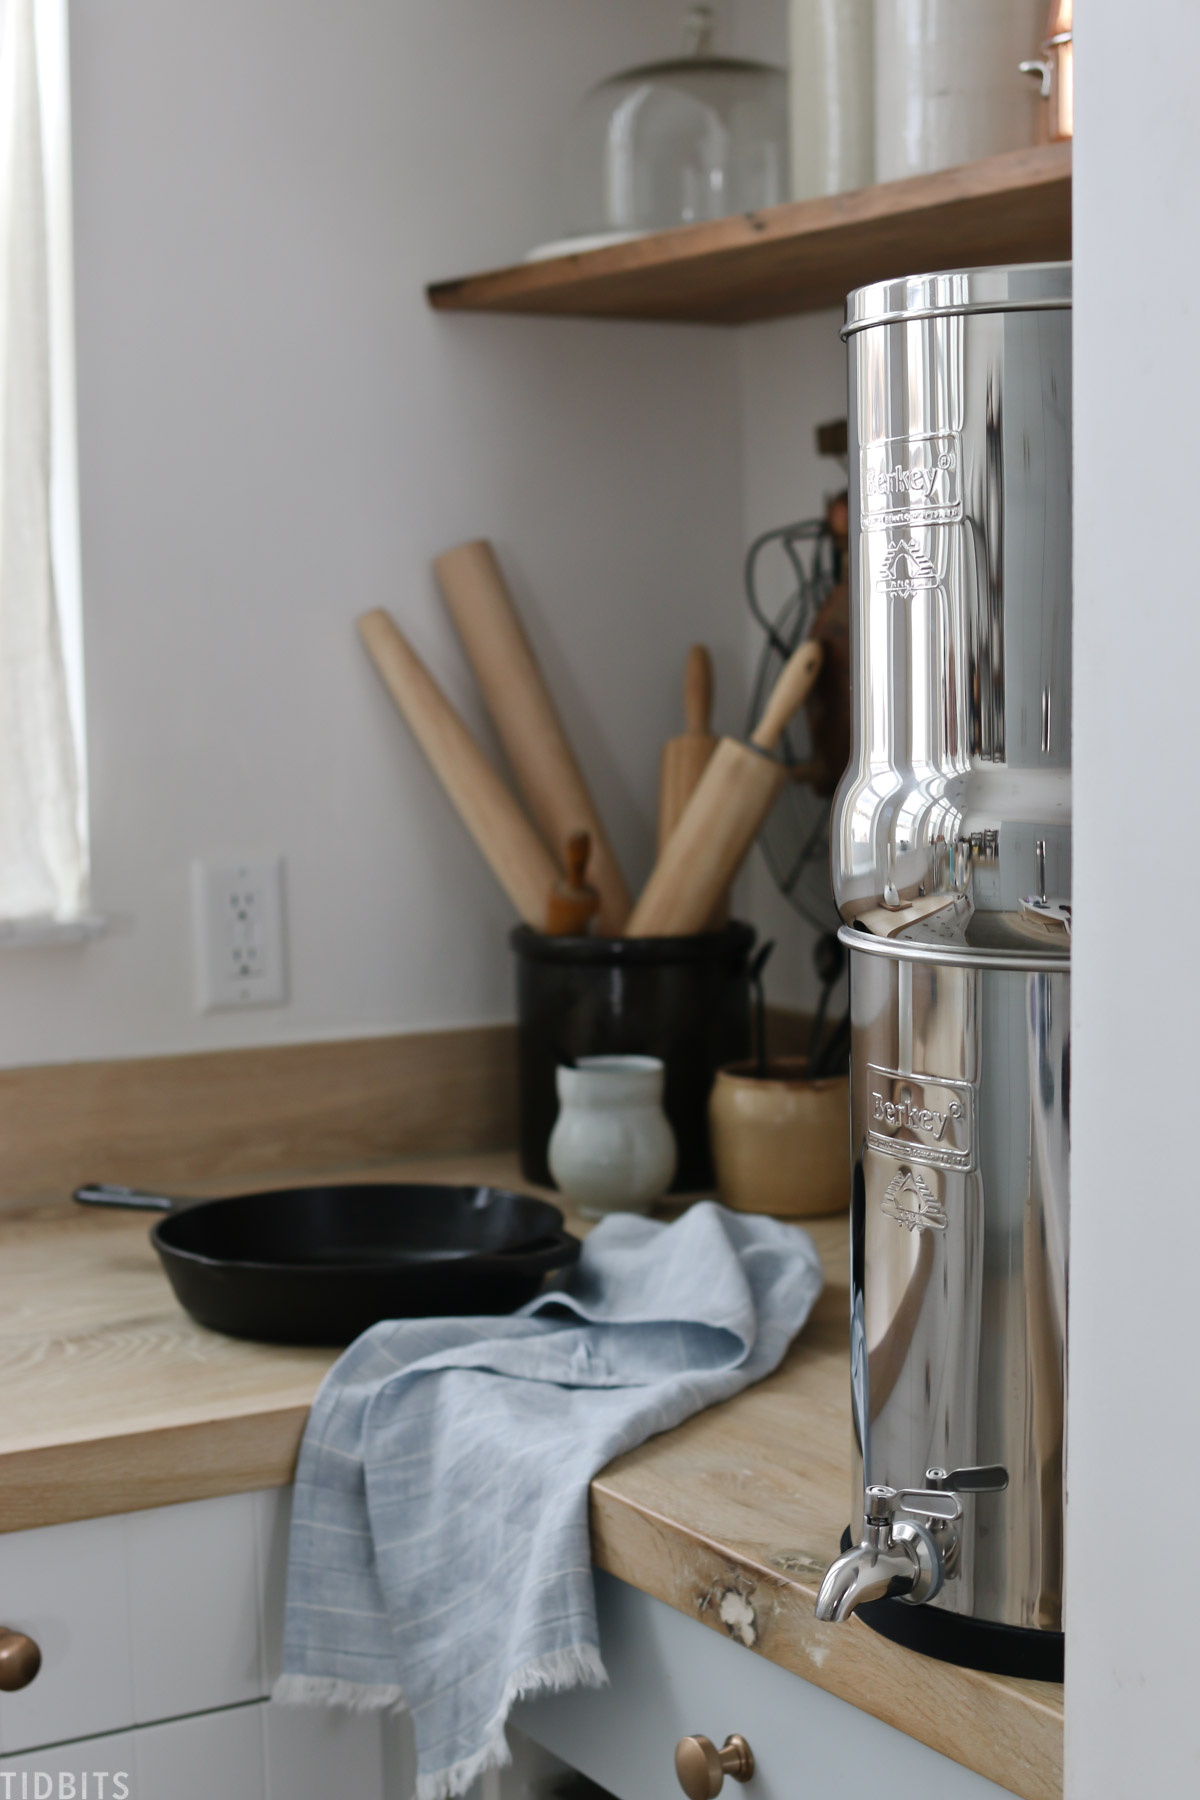 water filter on kitchen countertop